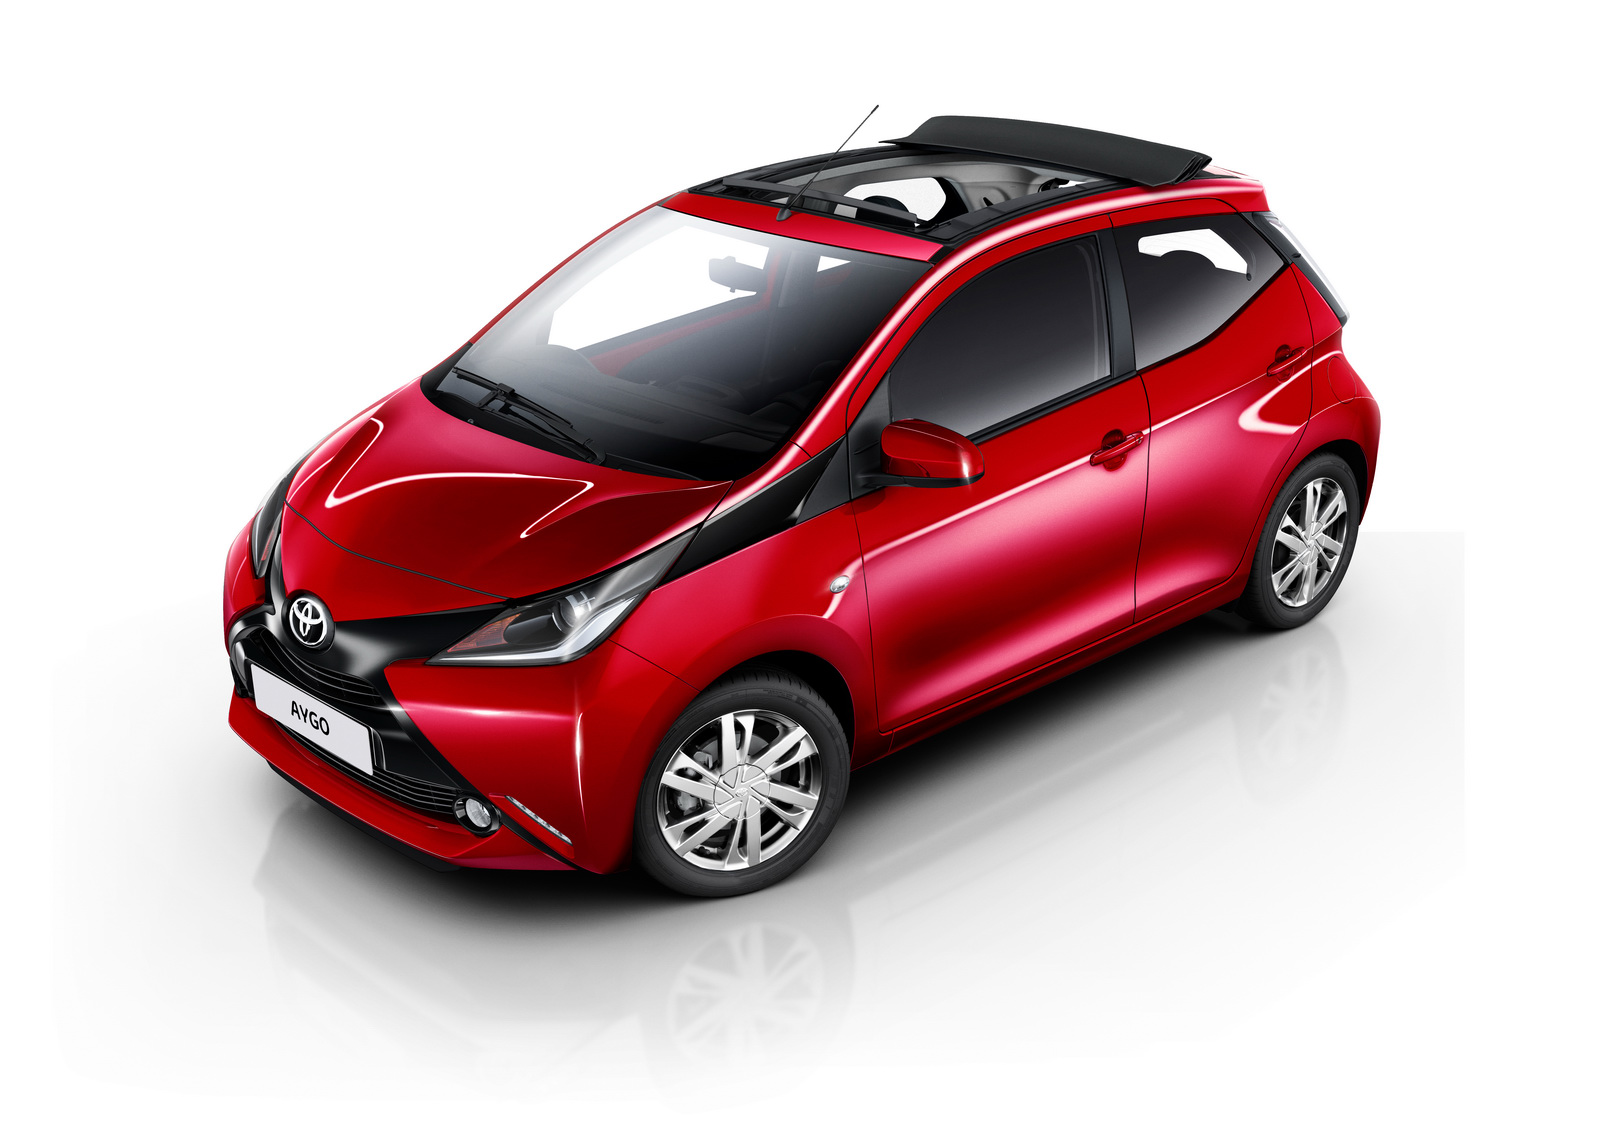 toyota aygo  u0e40 u0e1b u0e34 u0e14 u0e15 u0e31 u0e27 u0e2b u0e25 u0e31 u0e07 u0e04 u0e32 u0e41 u0e1a u0e1a x-wave canvas roof